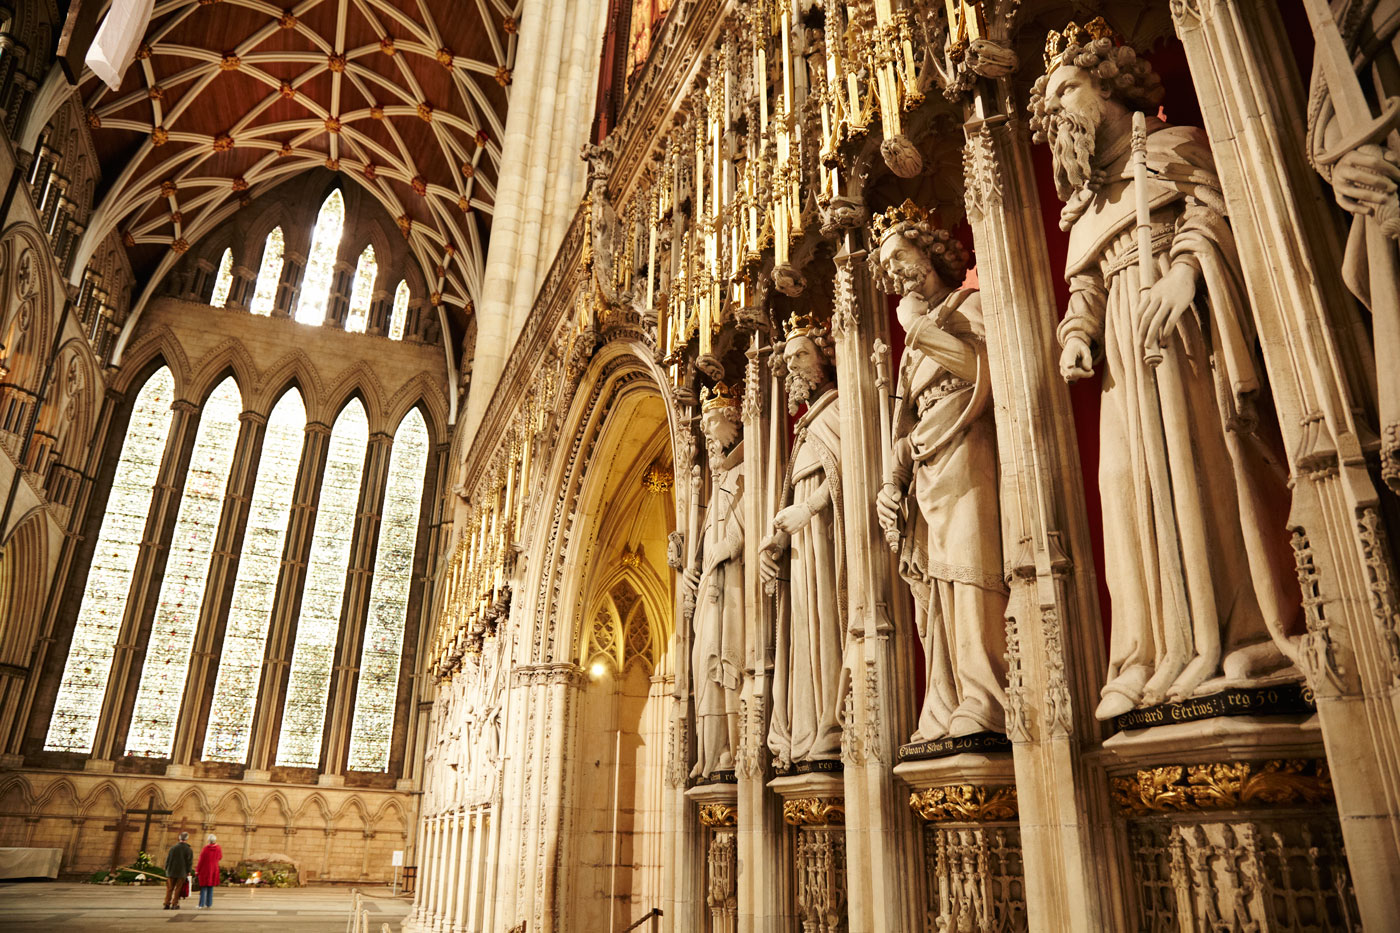 The Kings Screen and the Five Sisters, York Minster, York, England